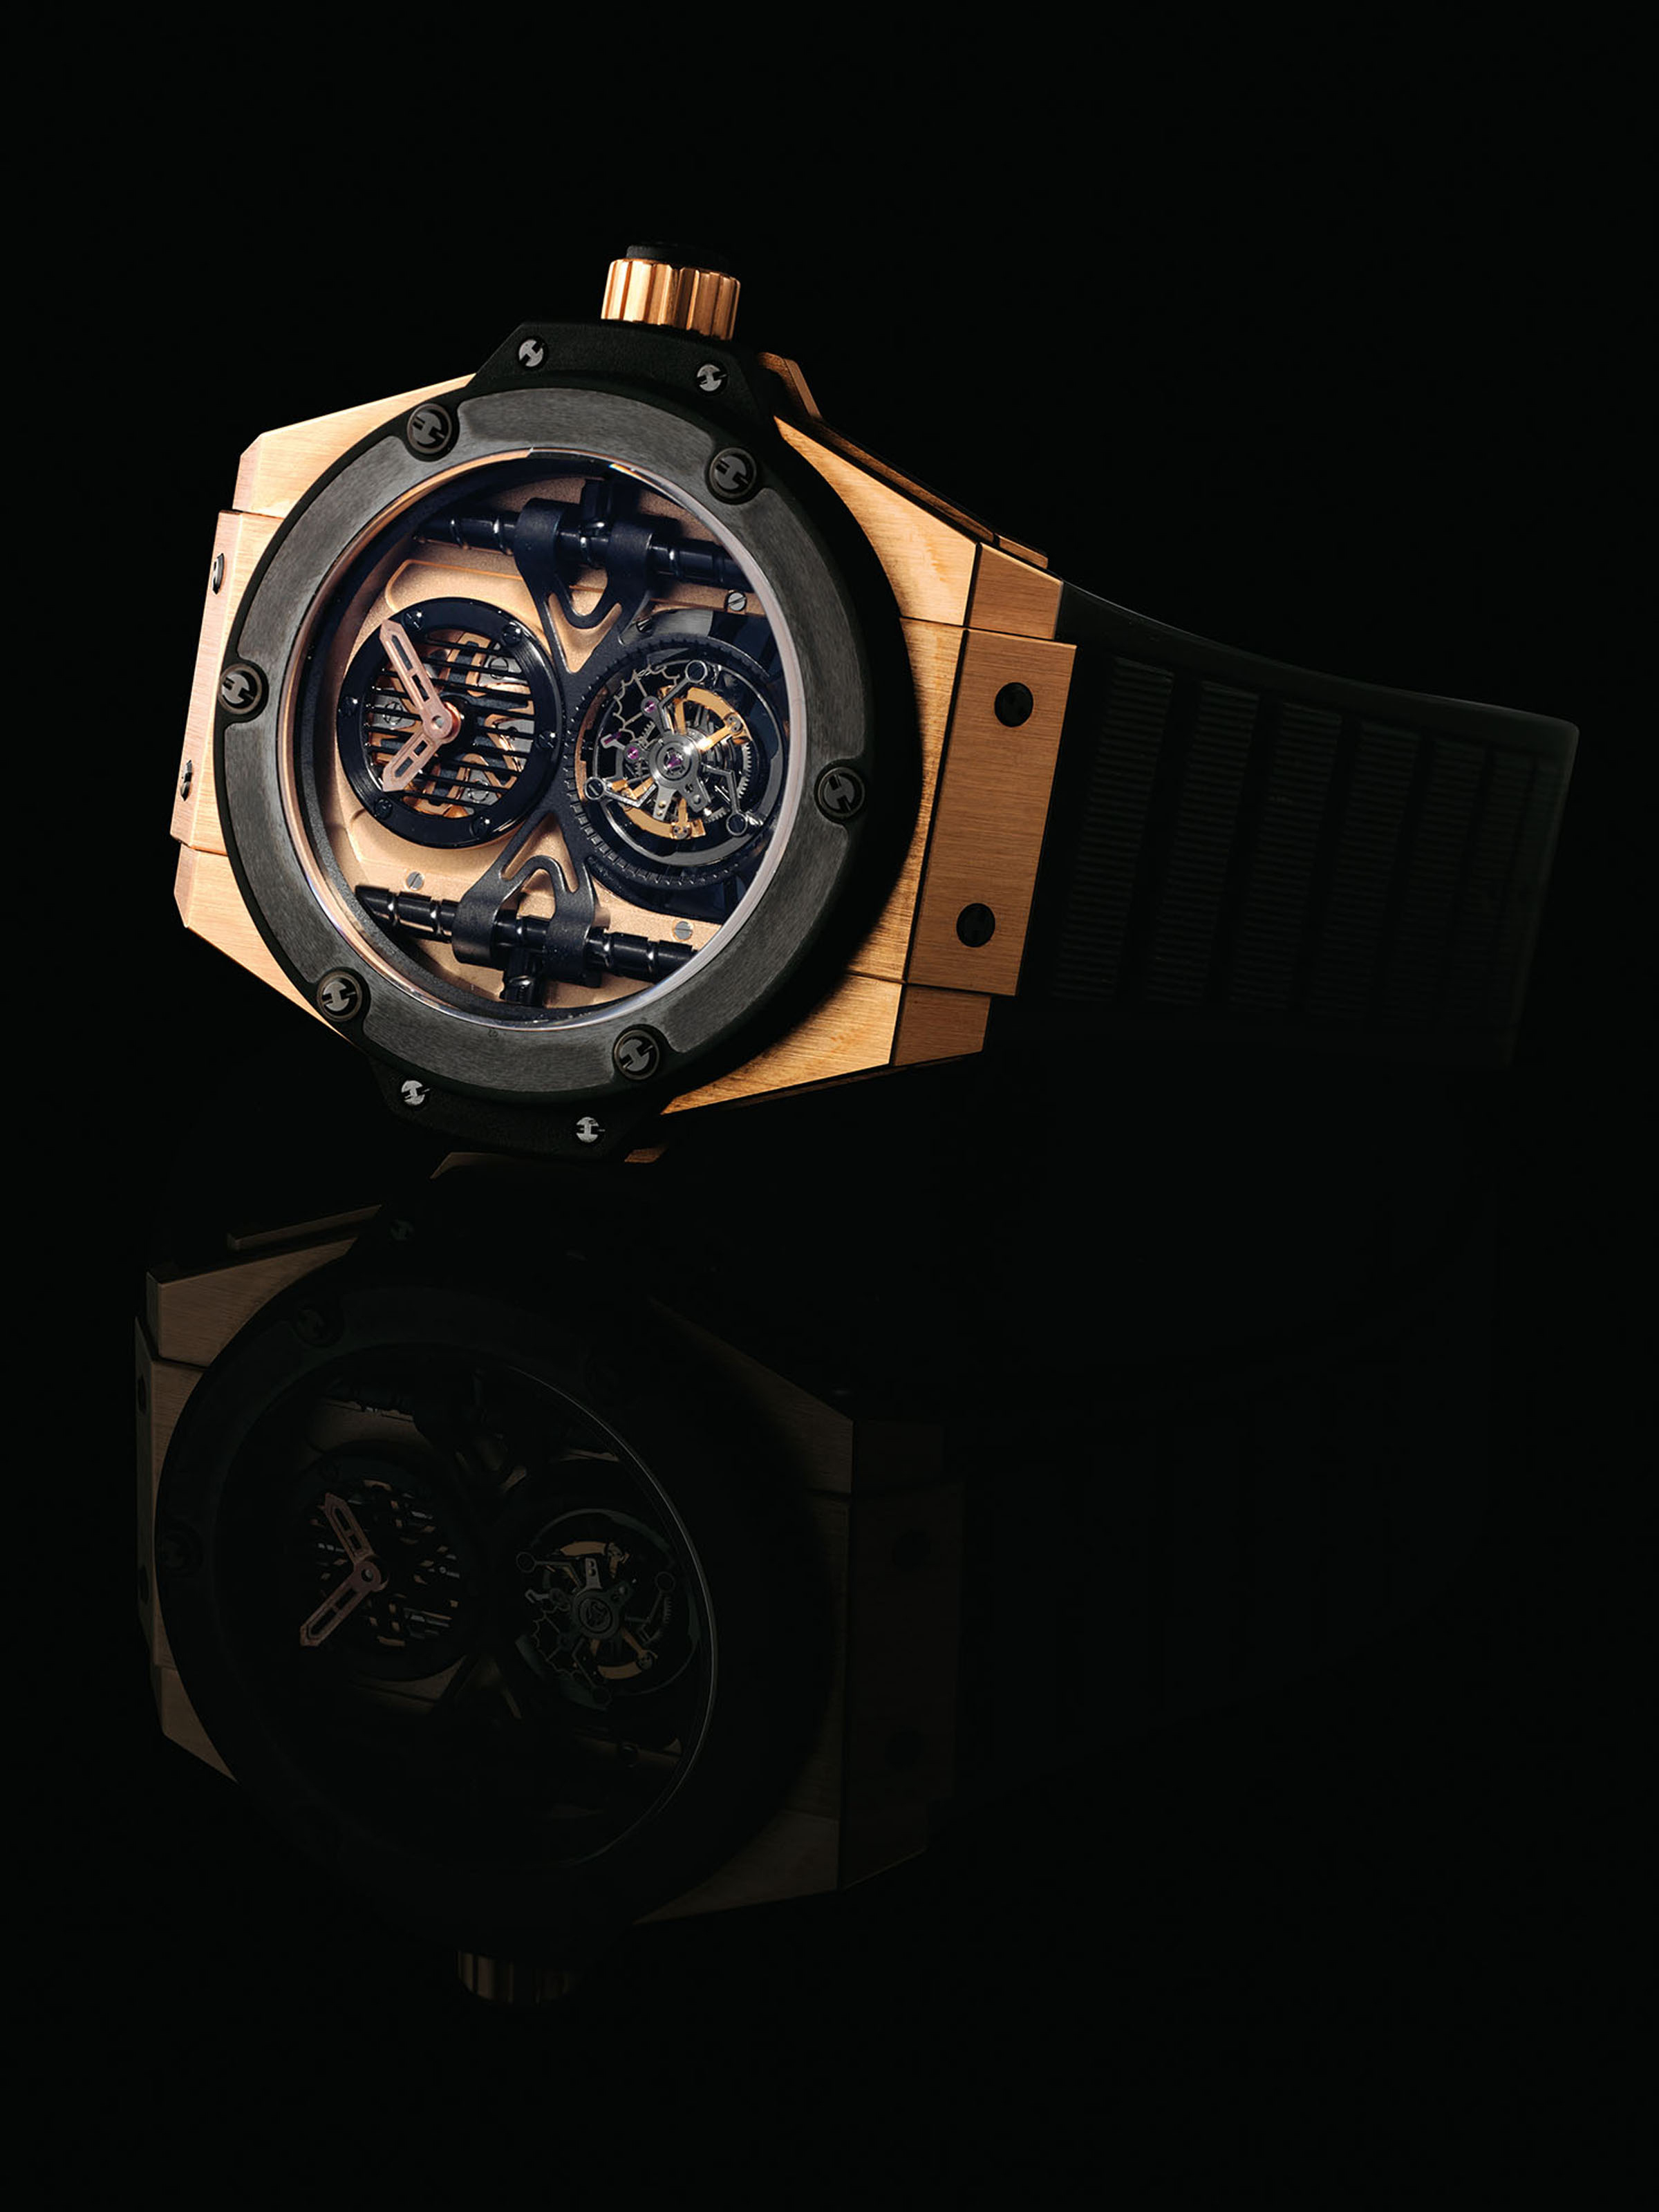 HUBLOT. AN OVERSIZED AND RARE 18K PINK GOLD AND TITANIUM LIMITED EDITION SEMI-SKELETONISED TOURBILLON WRISTWATCH